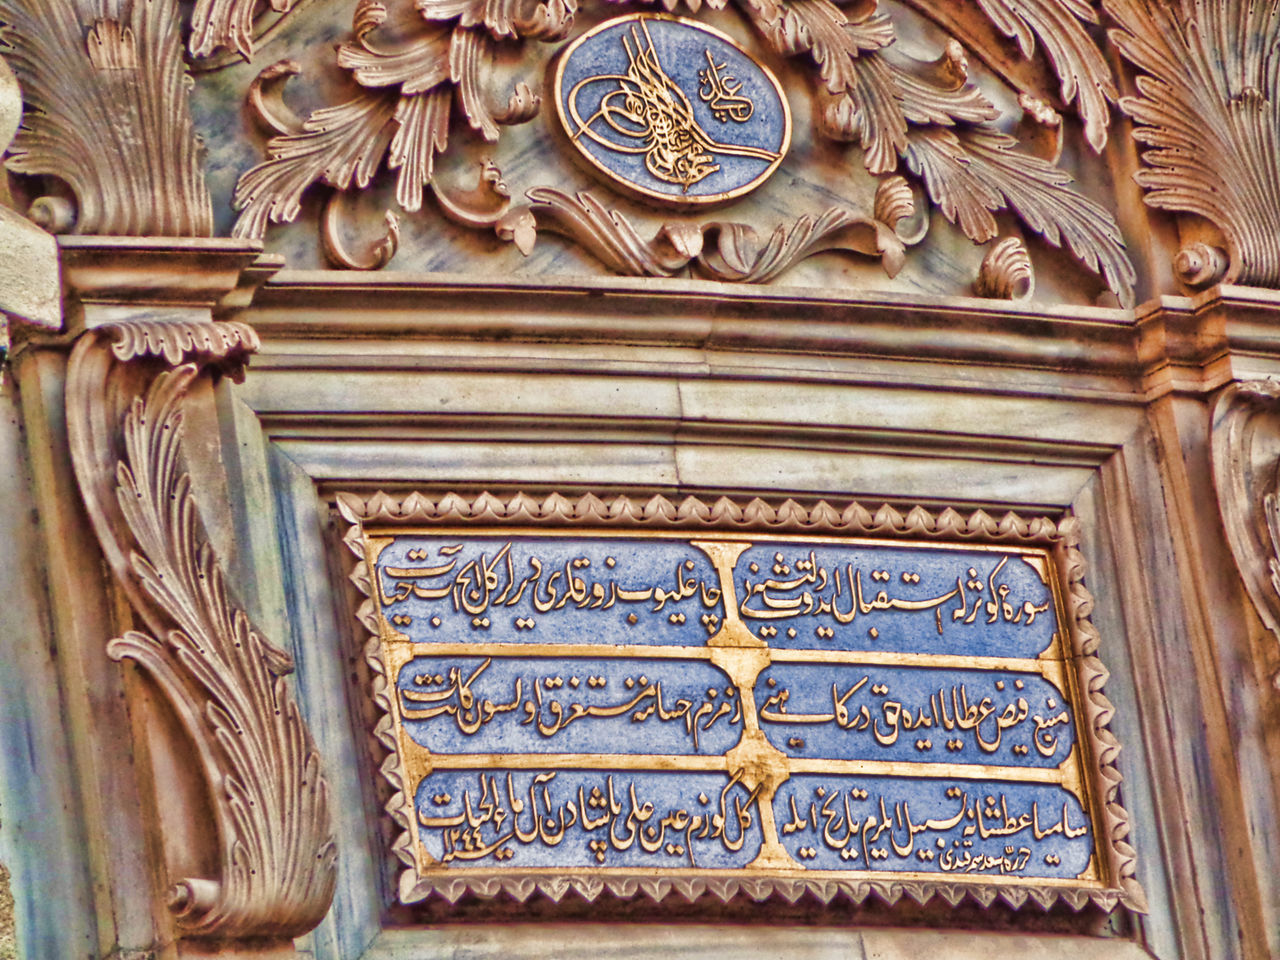 Fatimid Cairo Historical Copper  Close-up Gold Colored Building Exterior Travel Destinations Charm Islamic Art Cultures Islamicarchitecture History Islamic_art Islamic Architecture Historical Place Spirituality